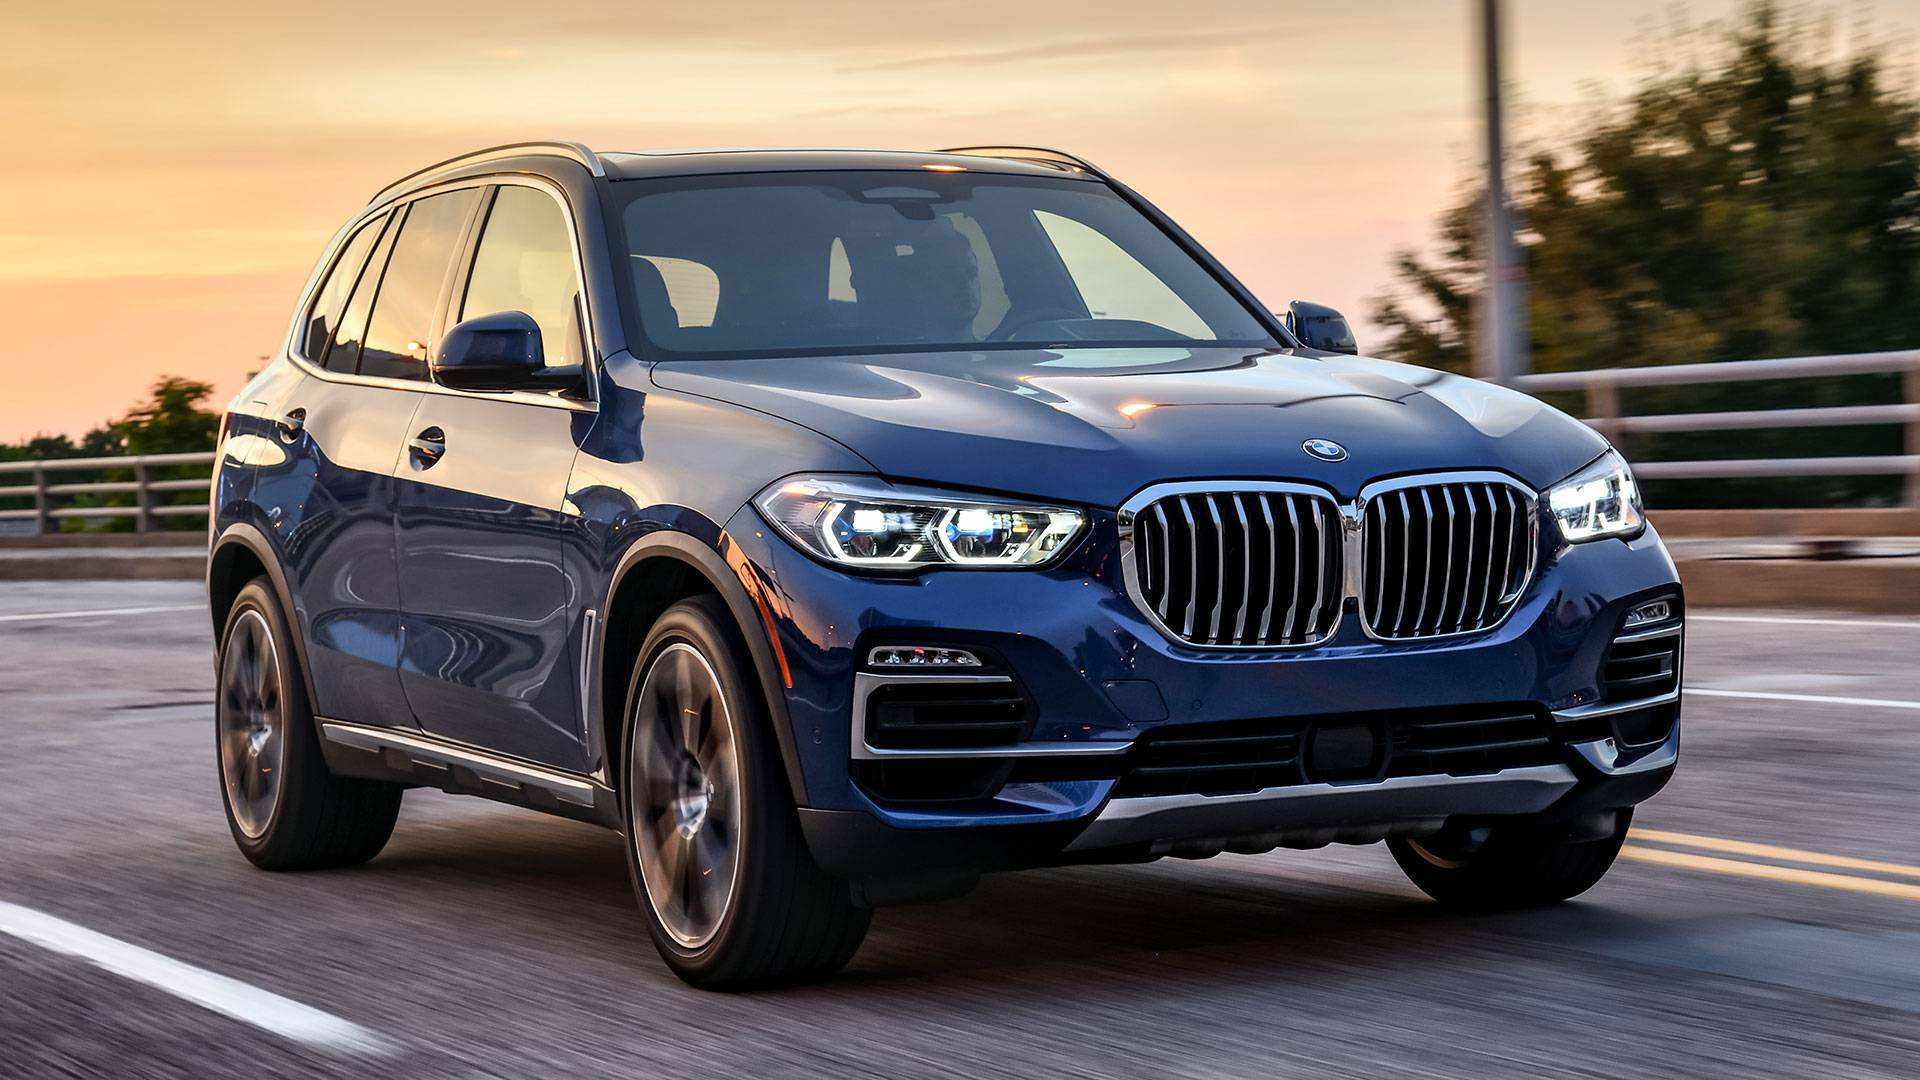 74 Best Review 2019 Bmw X5 Configurations by 2019 Bmw X5